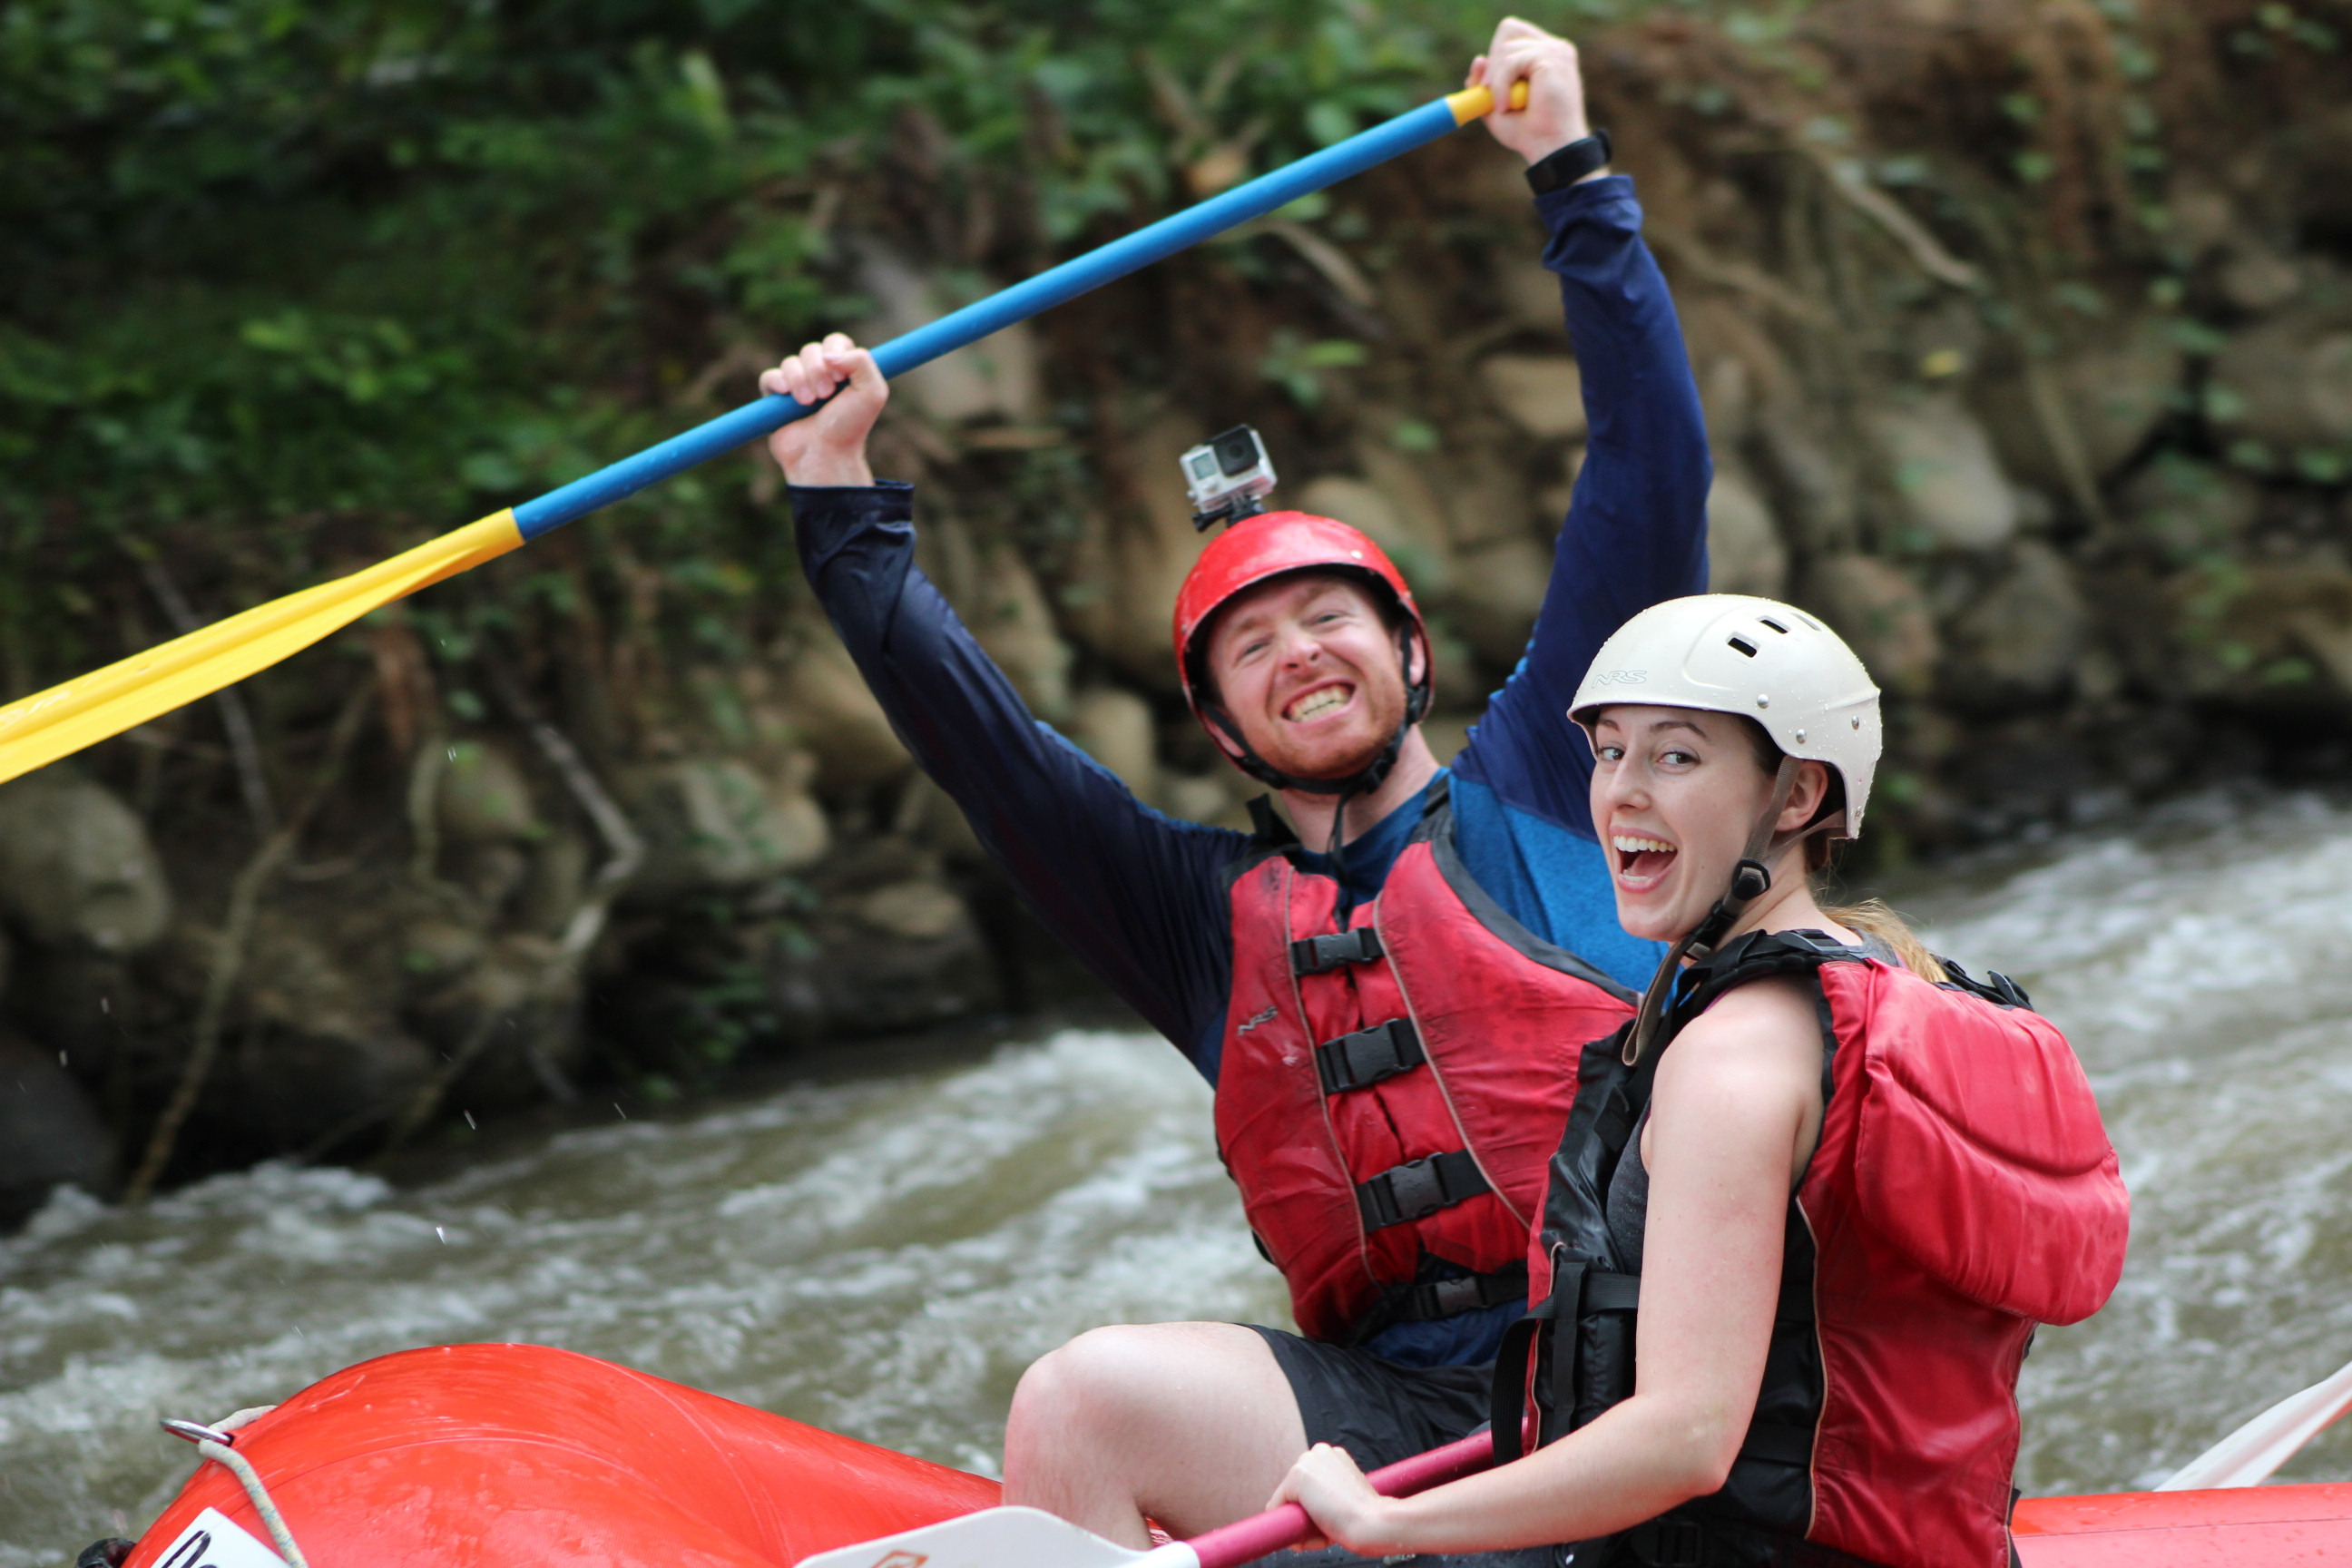 """Rafting on the SarapiquiRiver is considered one of the """"Must-Do"""" Costa Rica tours"""